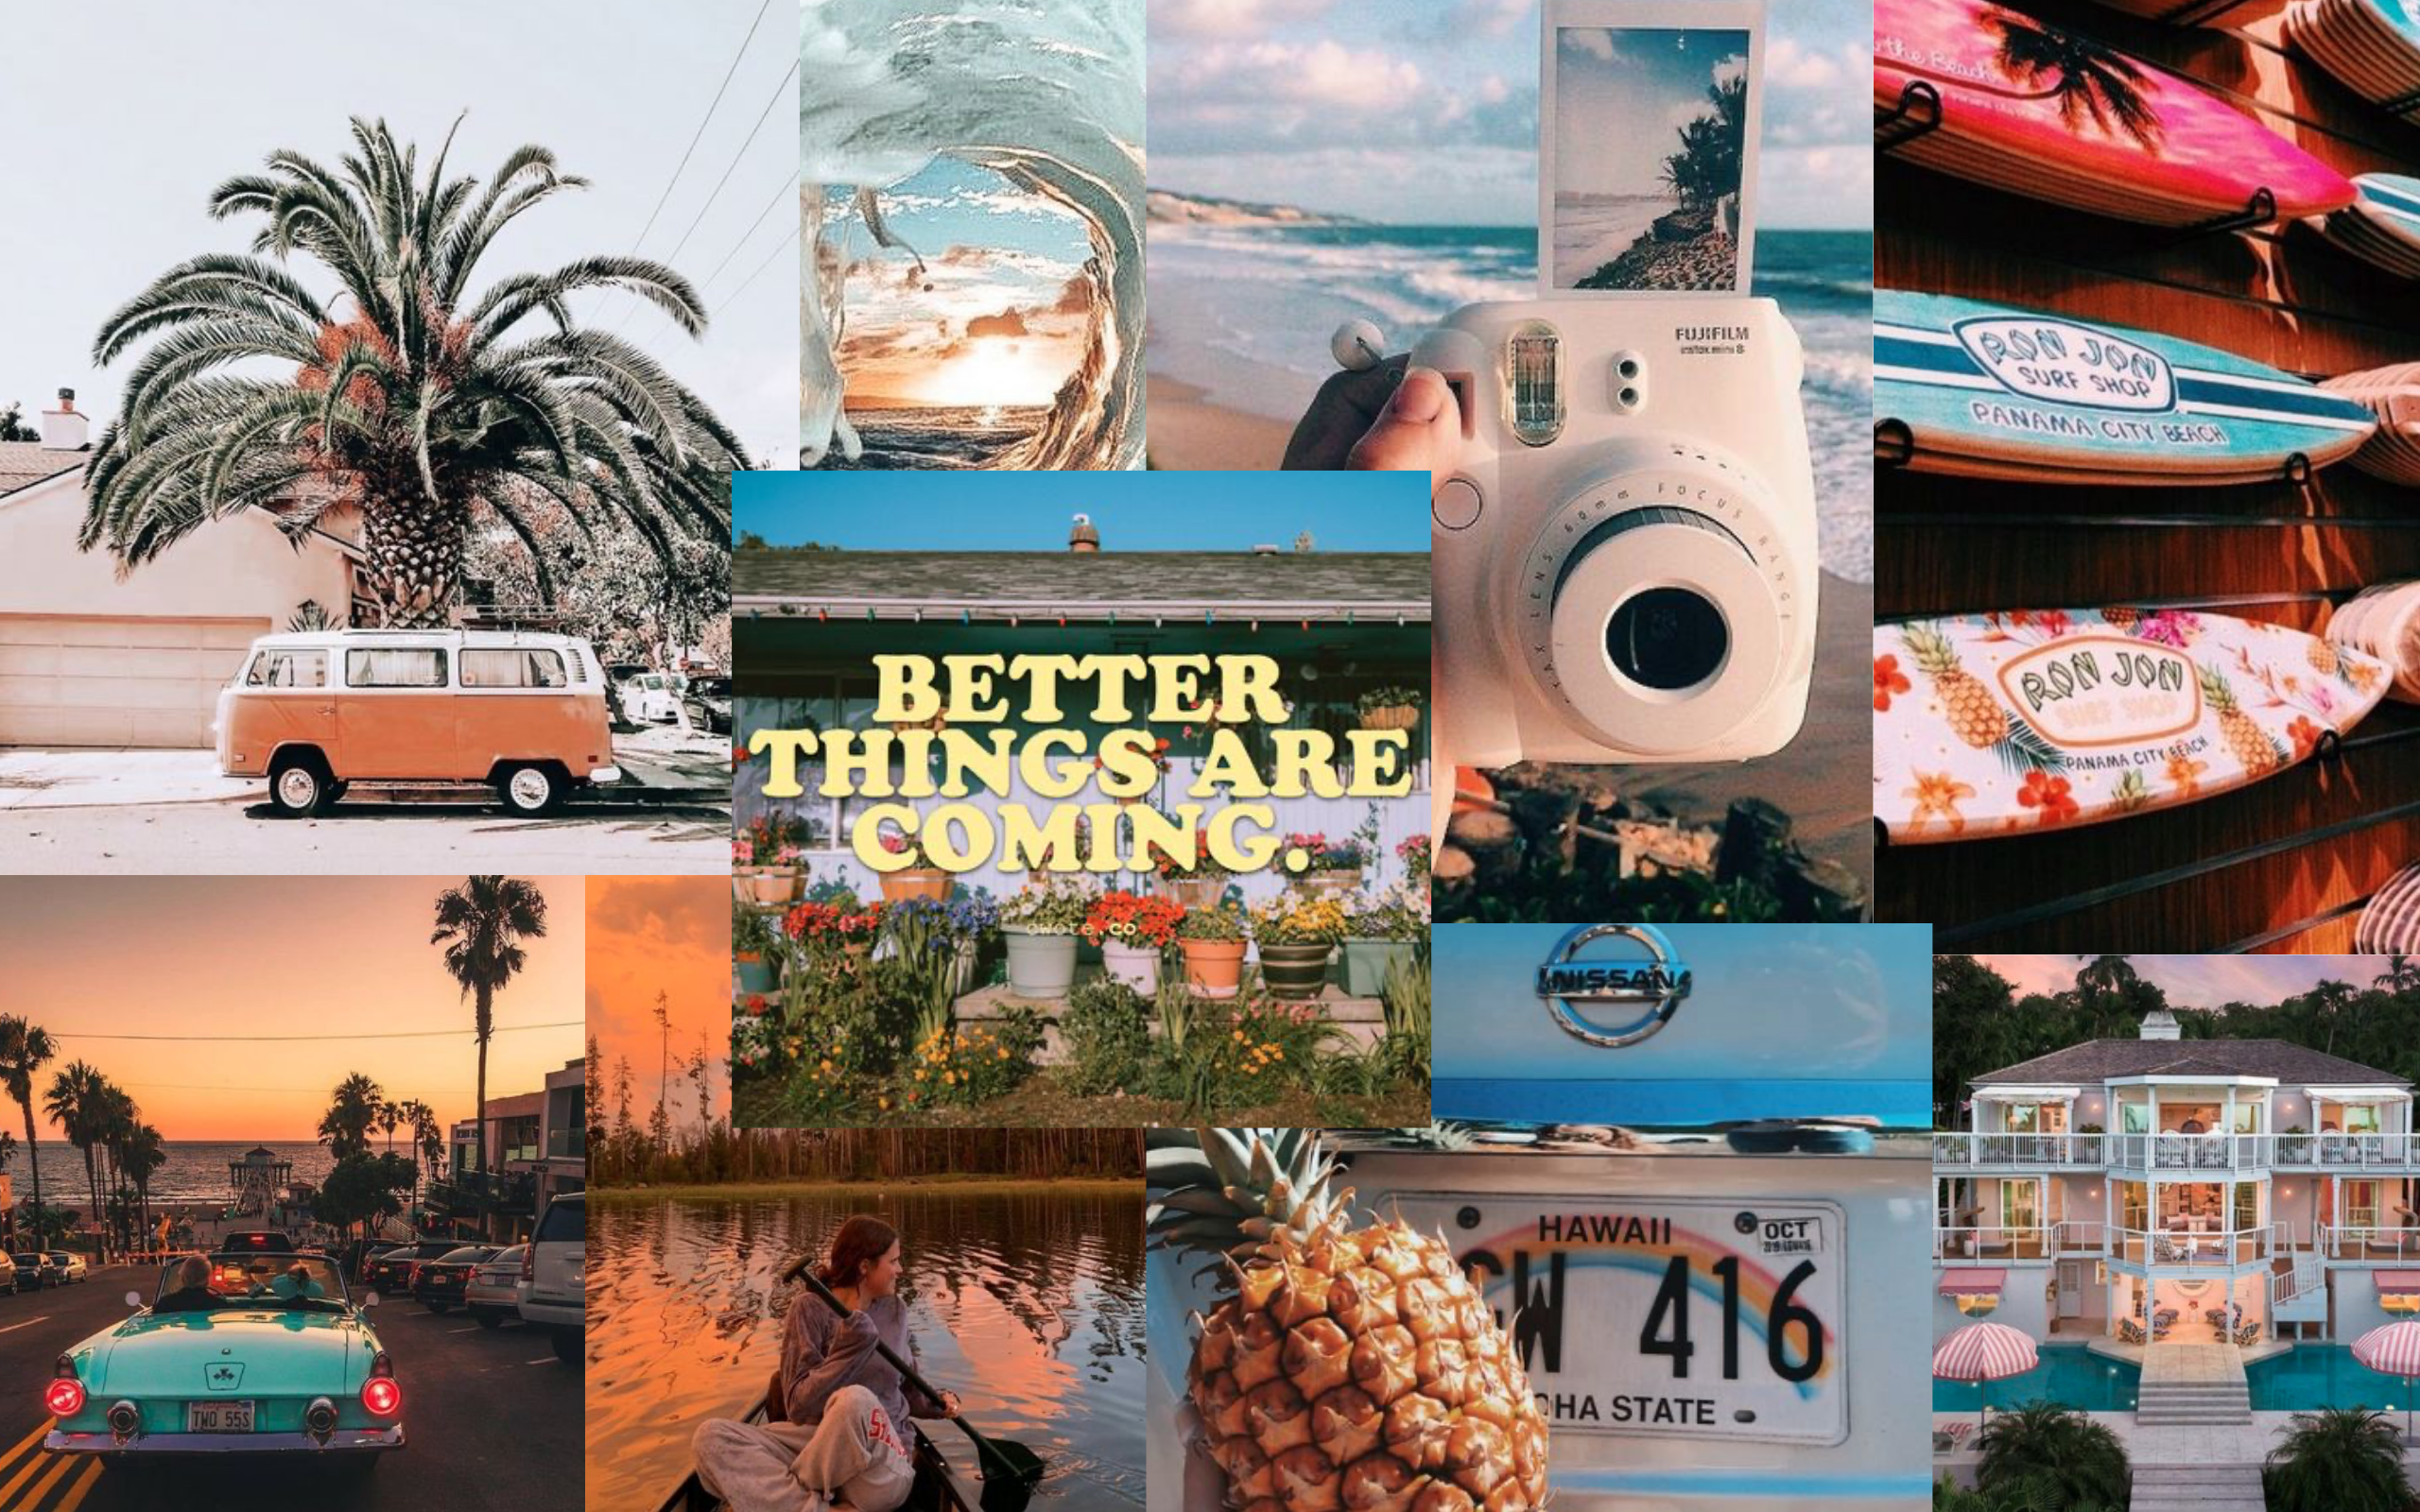 Collage Aesthetic Summer Laptop Wallpapers Top Free Collage Aesthetic Summer Laptop Backgrounds Wallpaperaccess Free collage maker fotojet looks very much like fotor and canva (below), but is more flexible and fun to use than either, making it our number one choice. collage aesthetic summer laptop